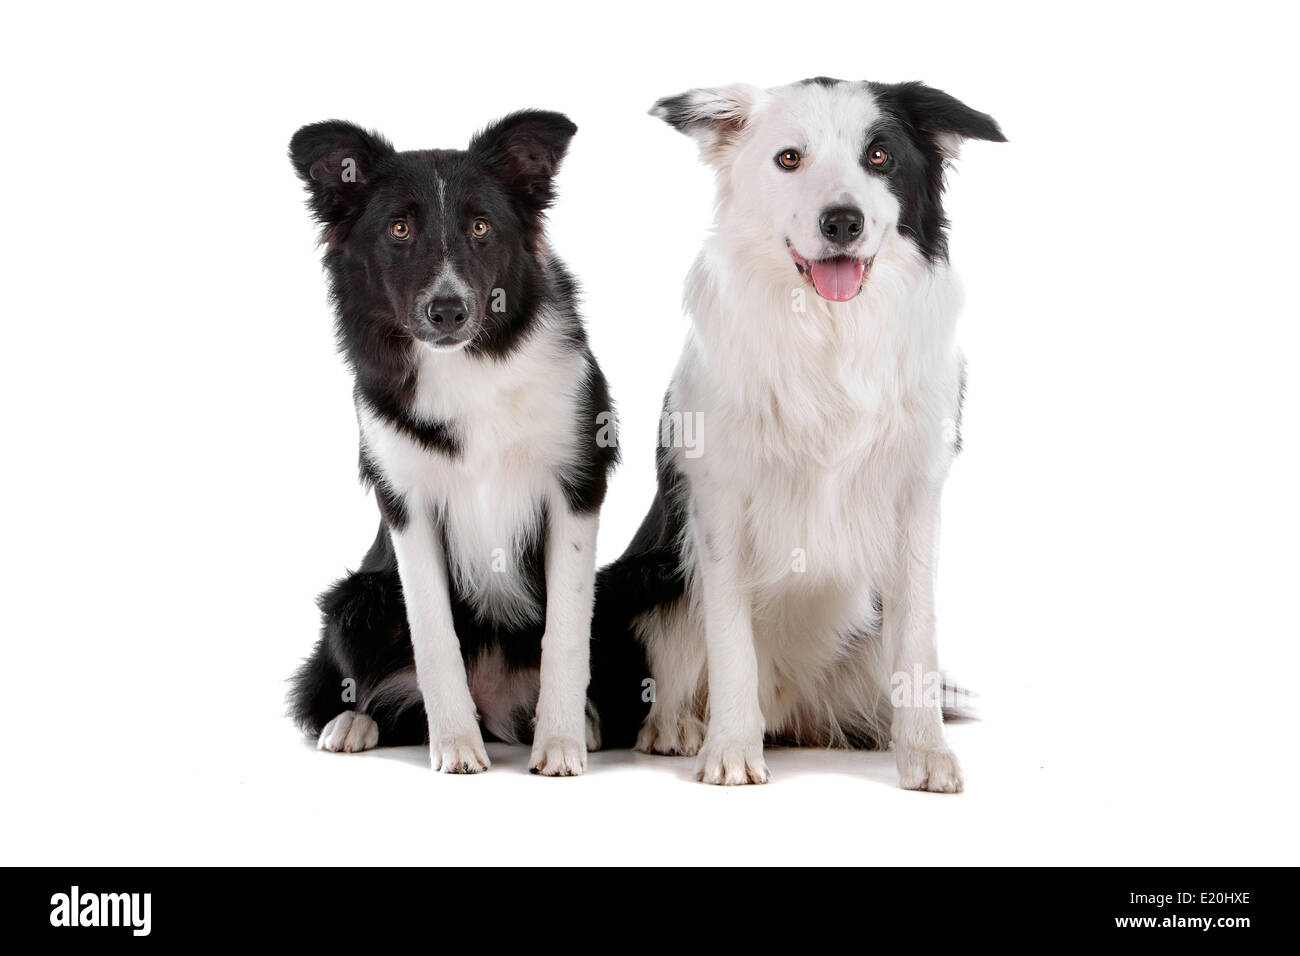 two border collie sheepdogs - Stock Image